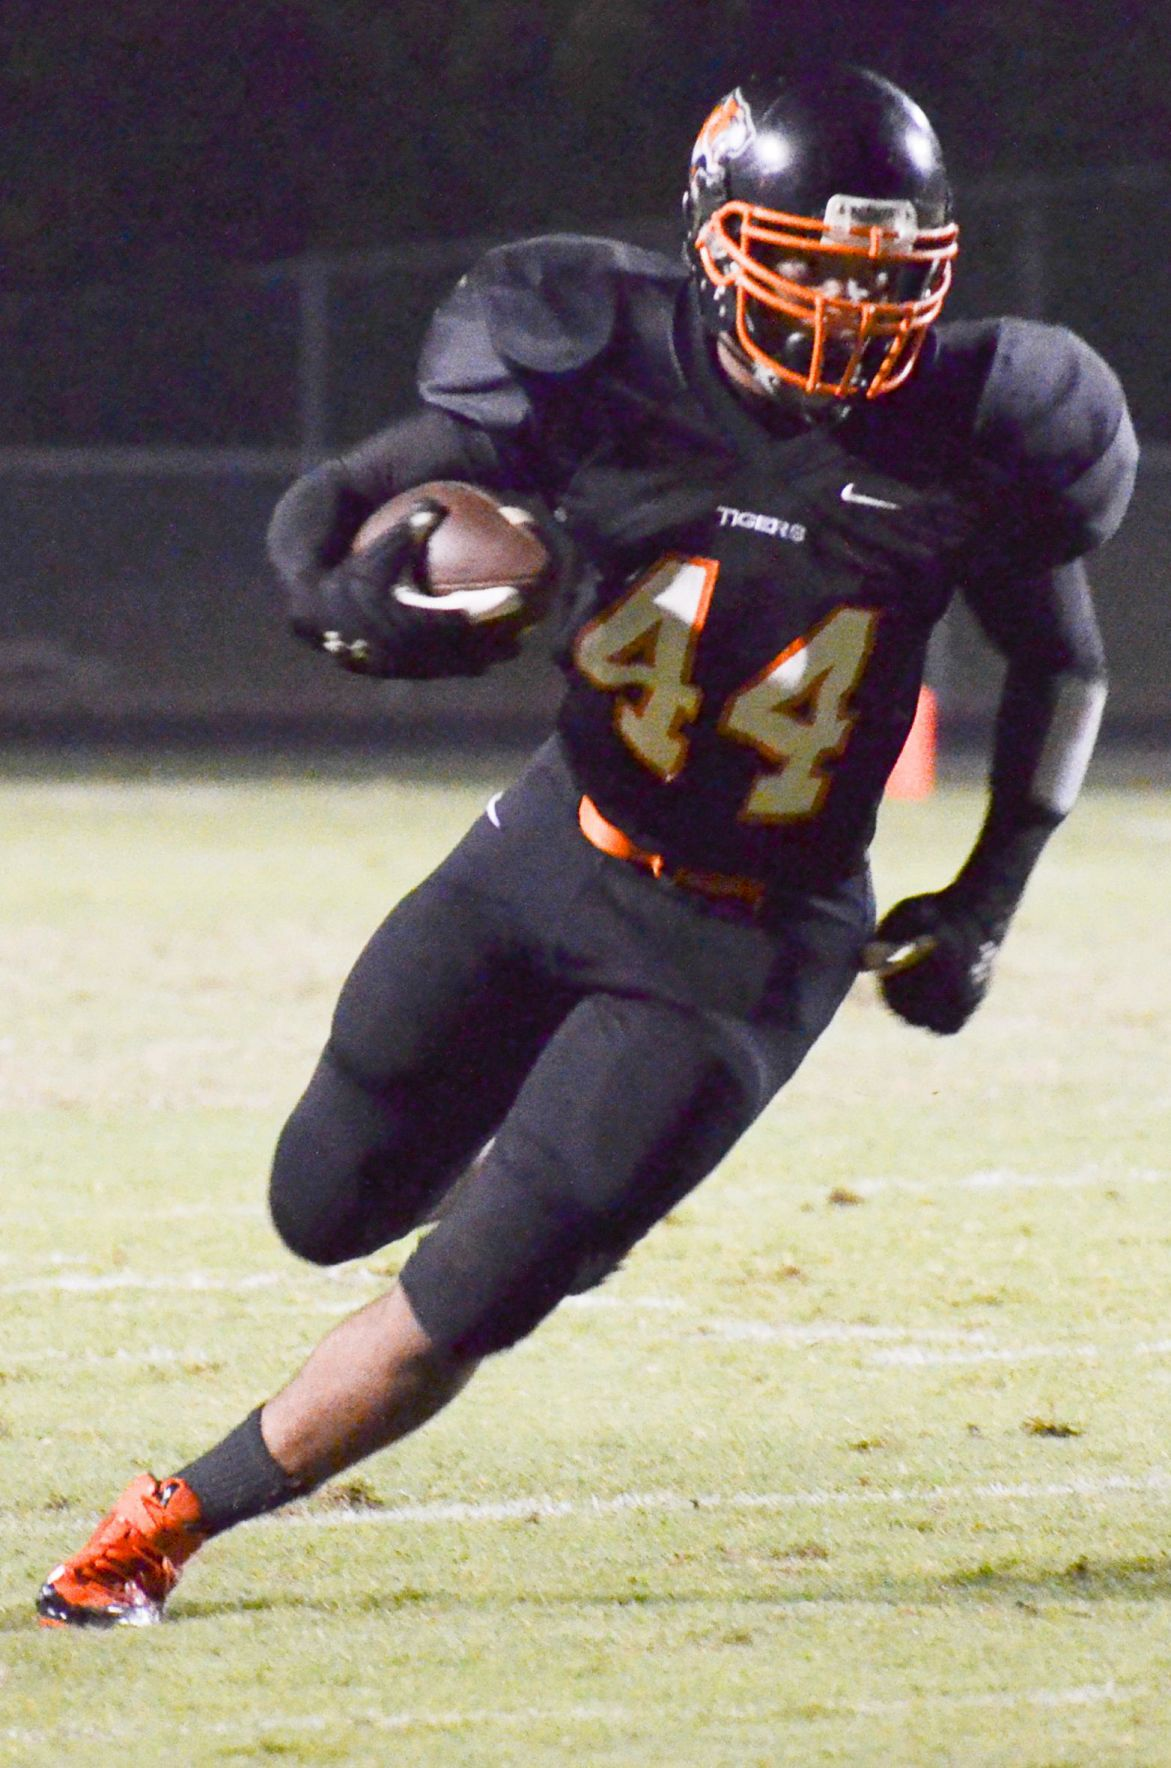 Tigers get homecoming win over Hornets